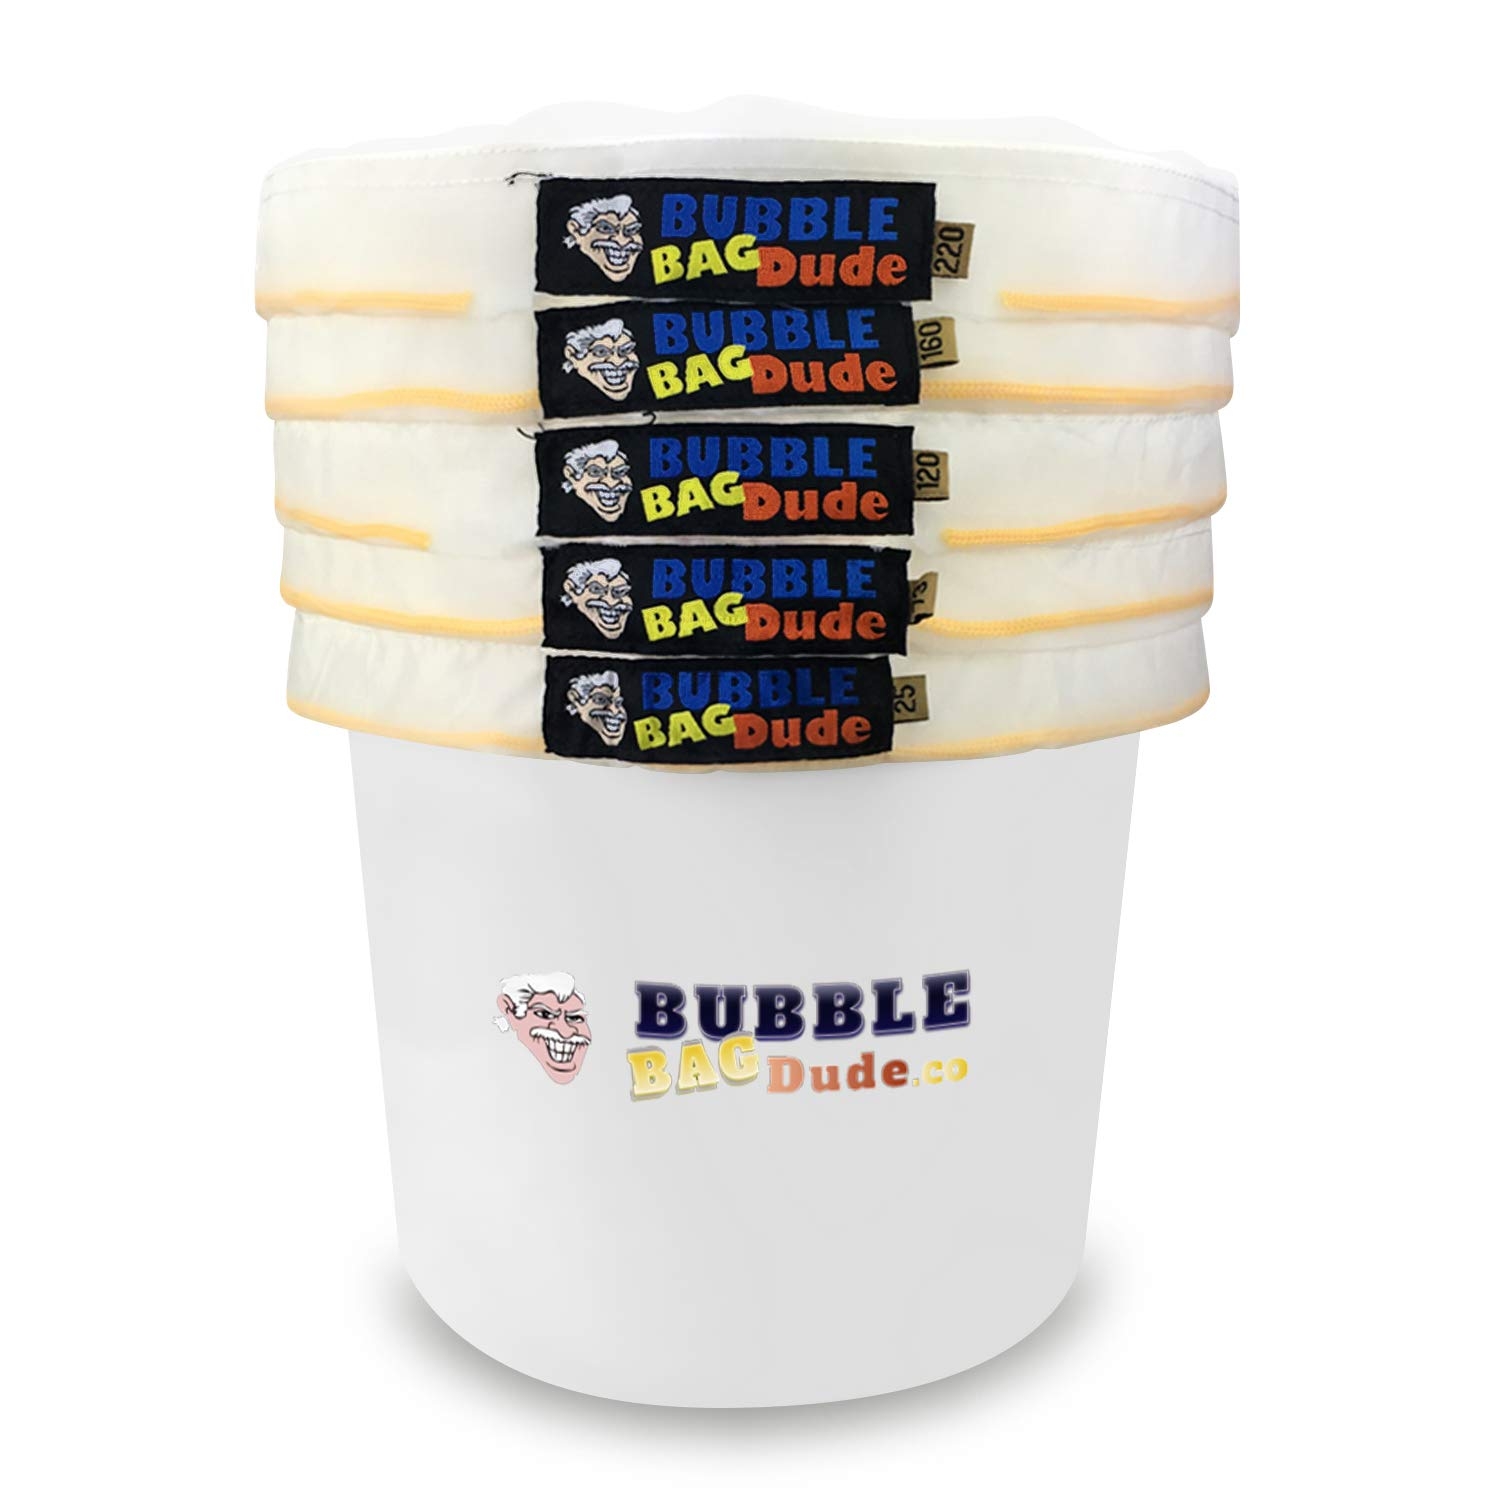 BUBBLEBAGDUDE Bubble Bags All Mesh 5 Gallon 5 Bag Herbal Hash Ice Bubble Bag Extractor Kit - Comes with Pressing Screen and Storage Bag from